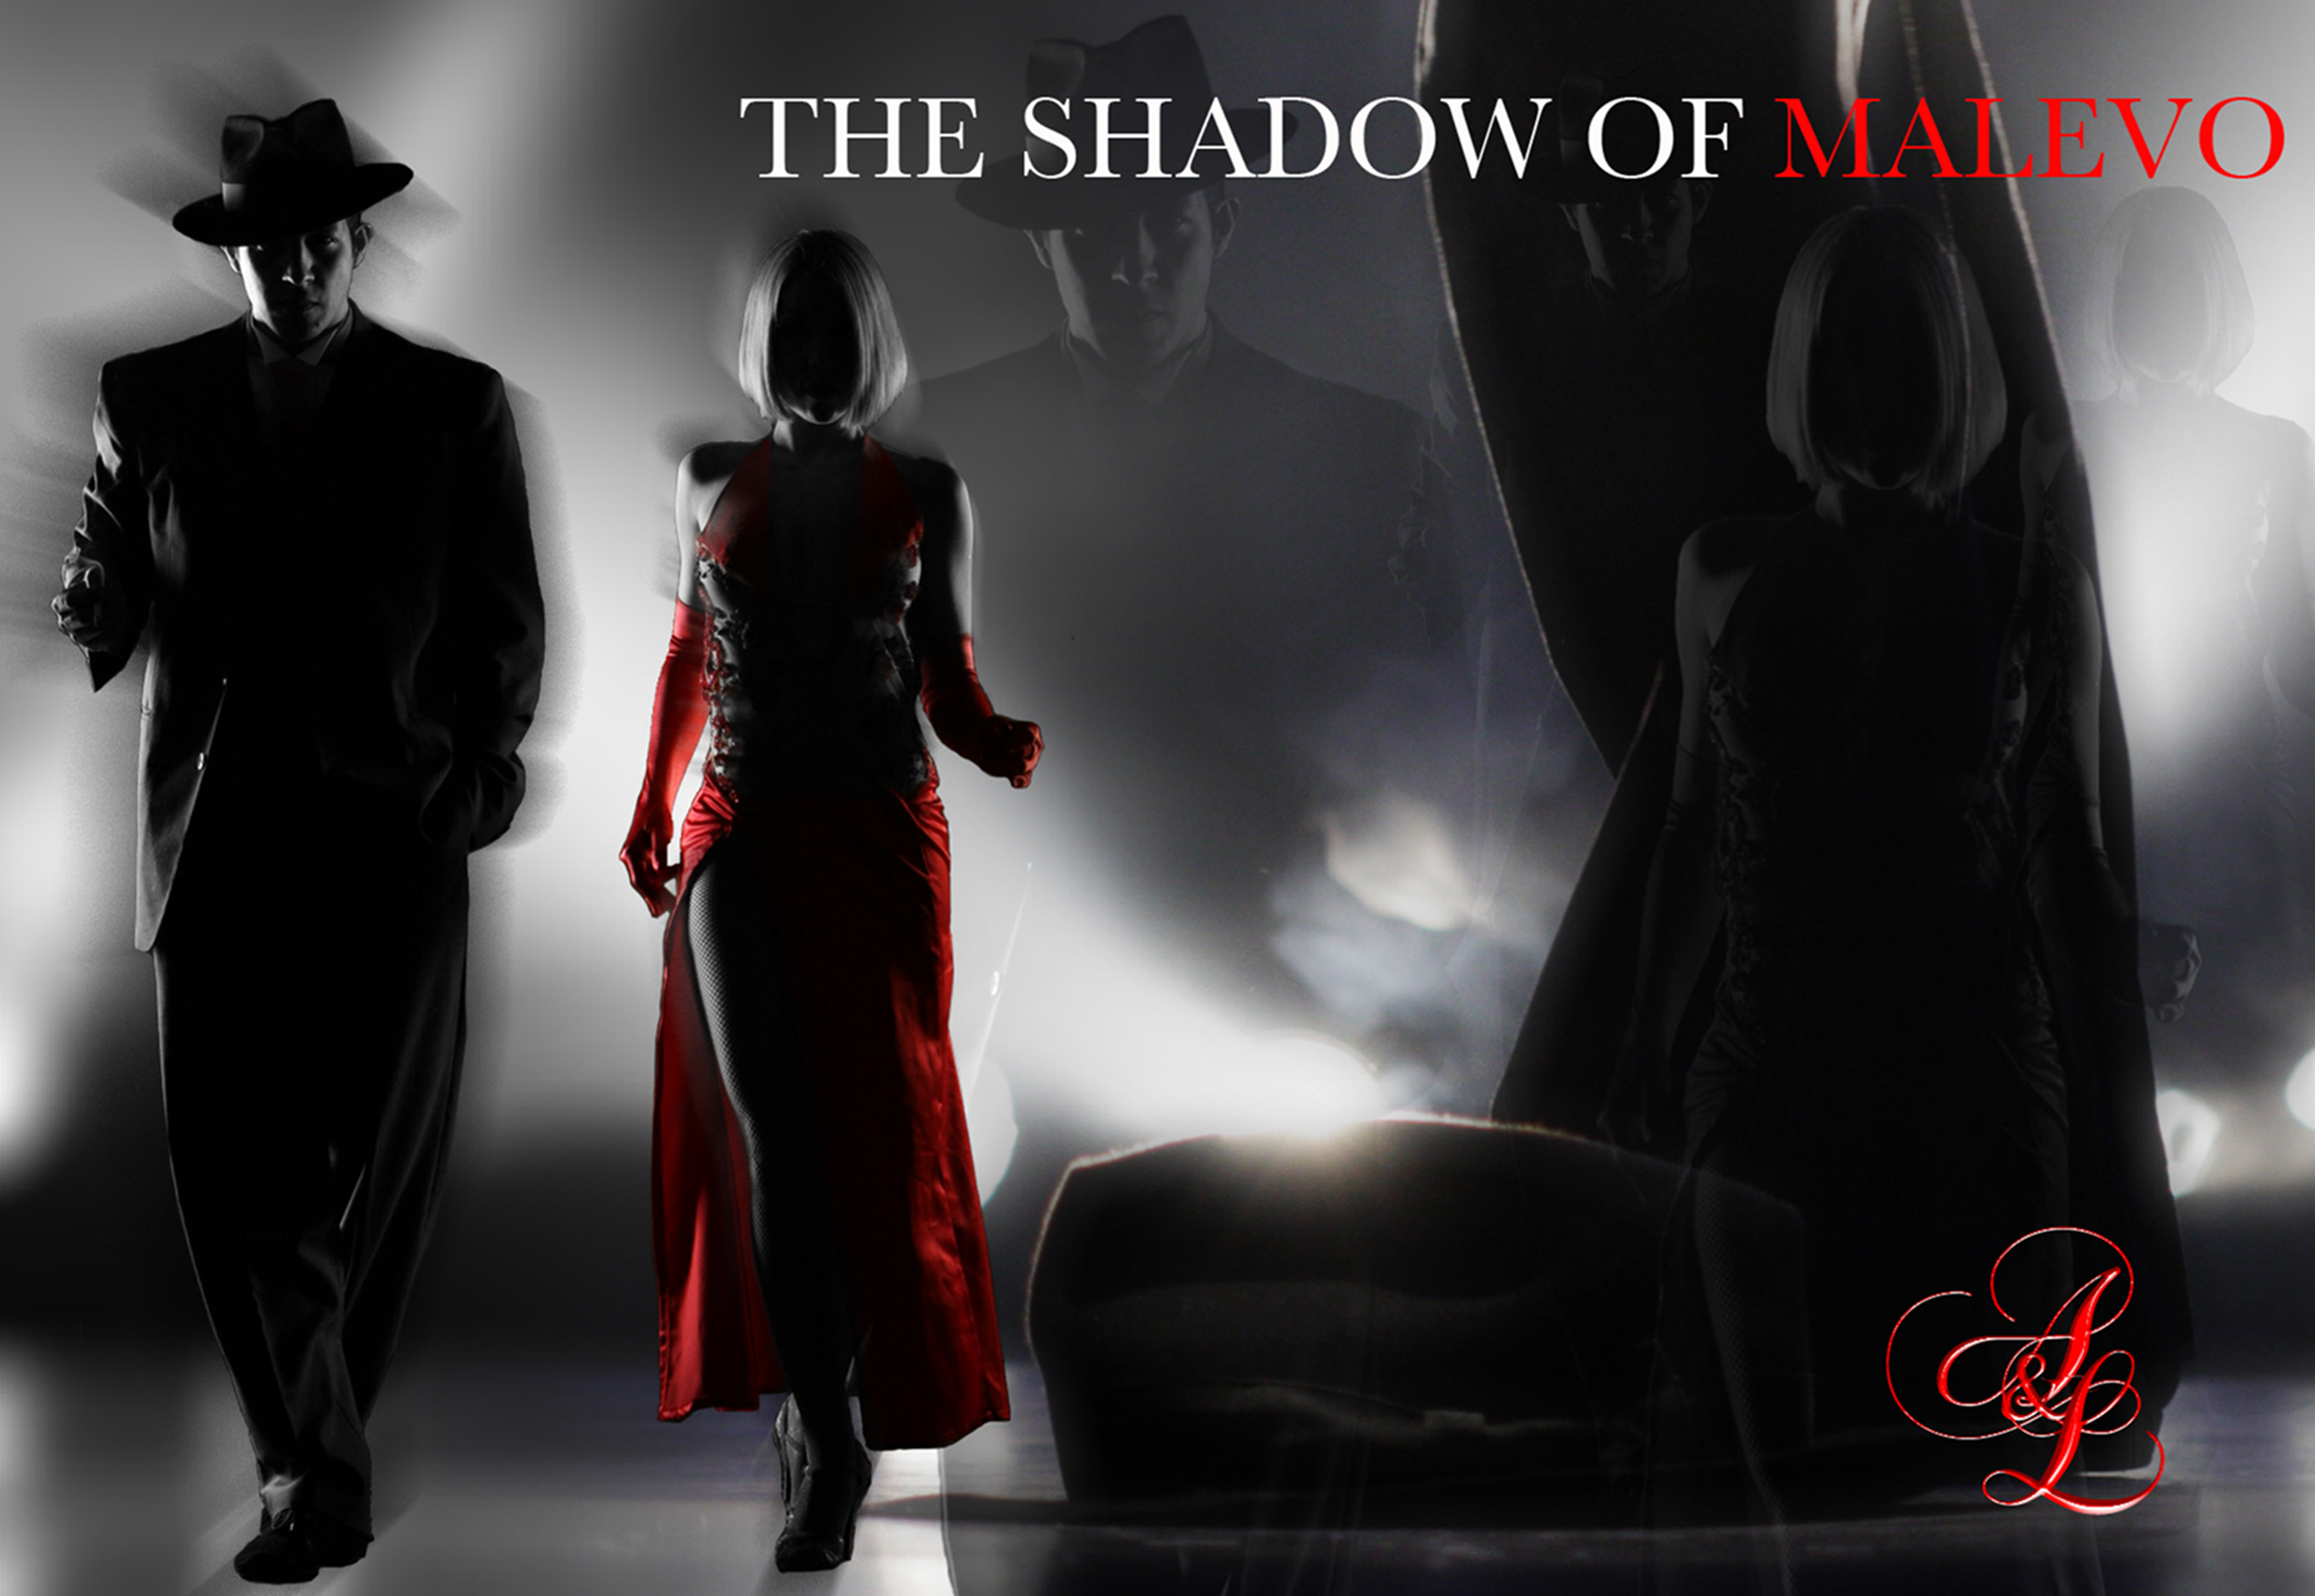 The Shadow of Malevo